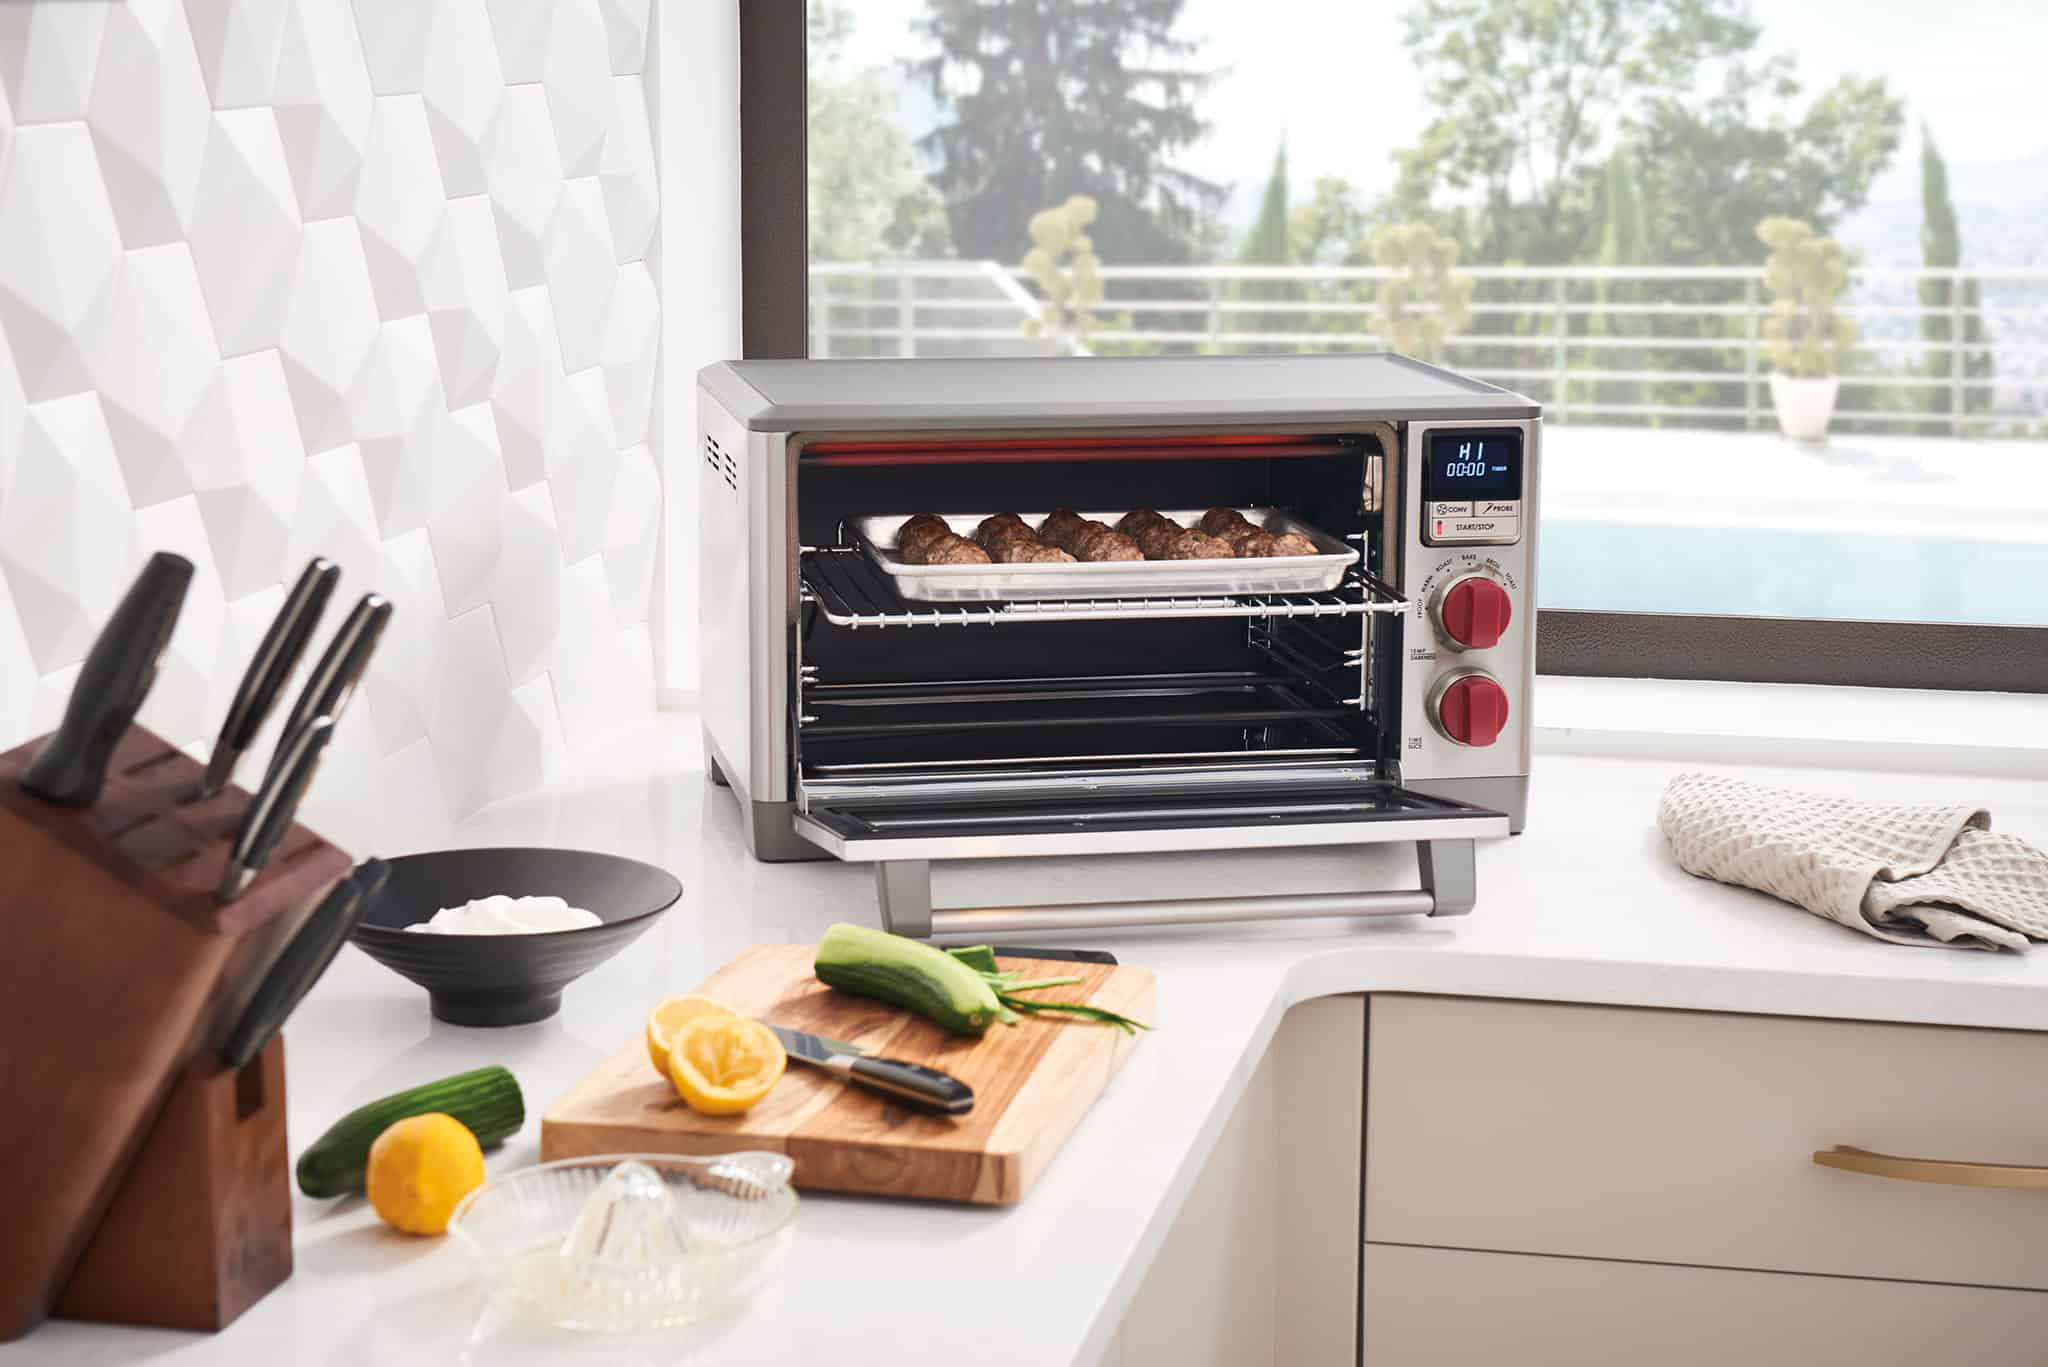 image of the Wolf Gourmet Countertop oven in use